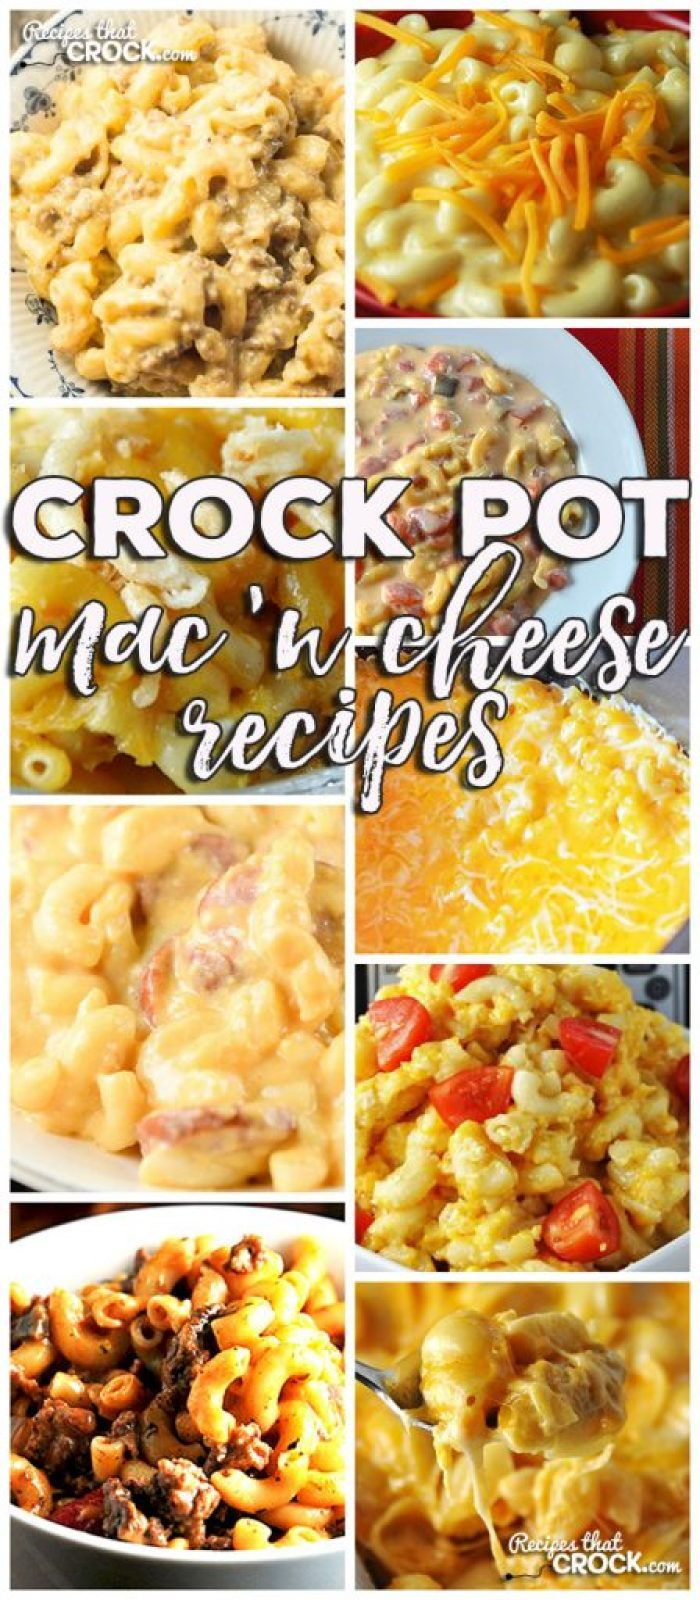 This week for our Friday Favoriteswe have some yummy Crock Pot Mac 'n Cheese Recipes like Crock Pot Smoked Sausage Mac 'n Cheese,Old Fashioned Crock Pot Mac 'n Cheese,Crock Pot Golden Mac n Cheese,Crock Pot Beefy Mac, Crock Pot Fiesta Mac 'n Cheese, Creamy Crock Pot Mac 'n Cheese, Extra Cheesy Crock Pot Mac 'n Cheese, Beefy Mac 'n Cheese & Crock Pot Cheese Lover's Shells!